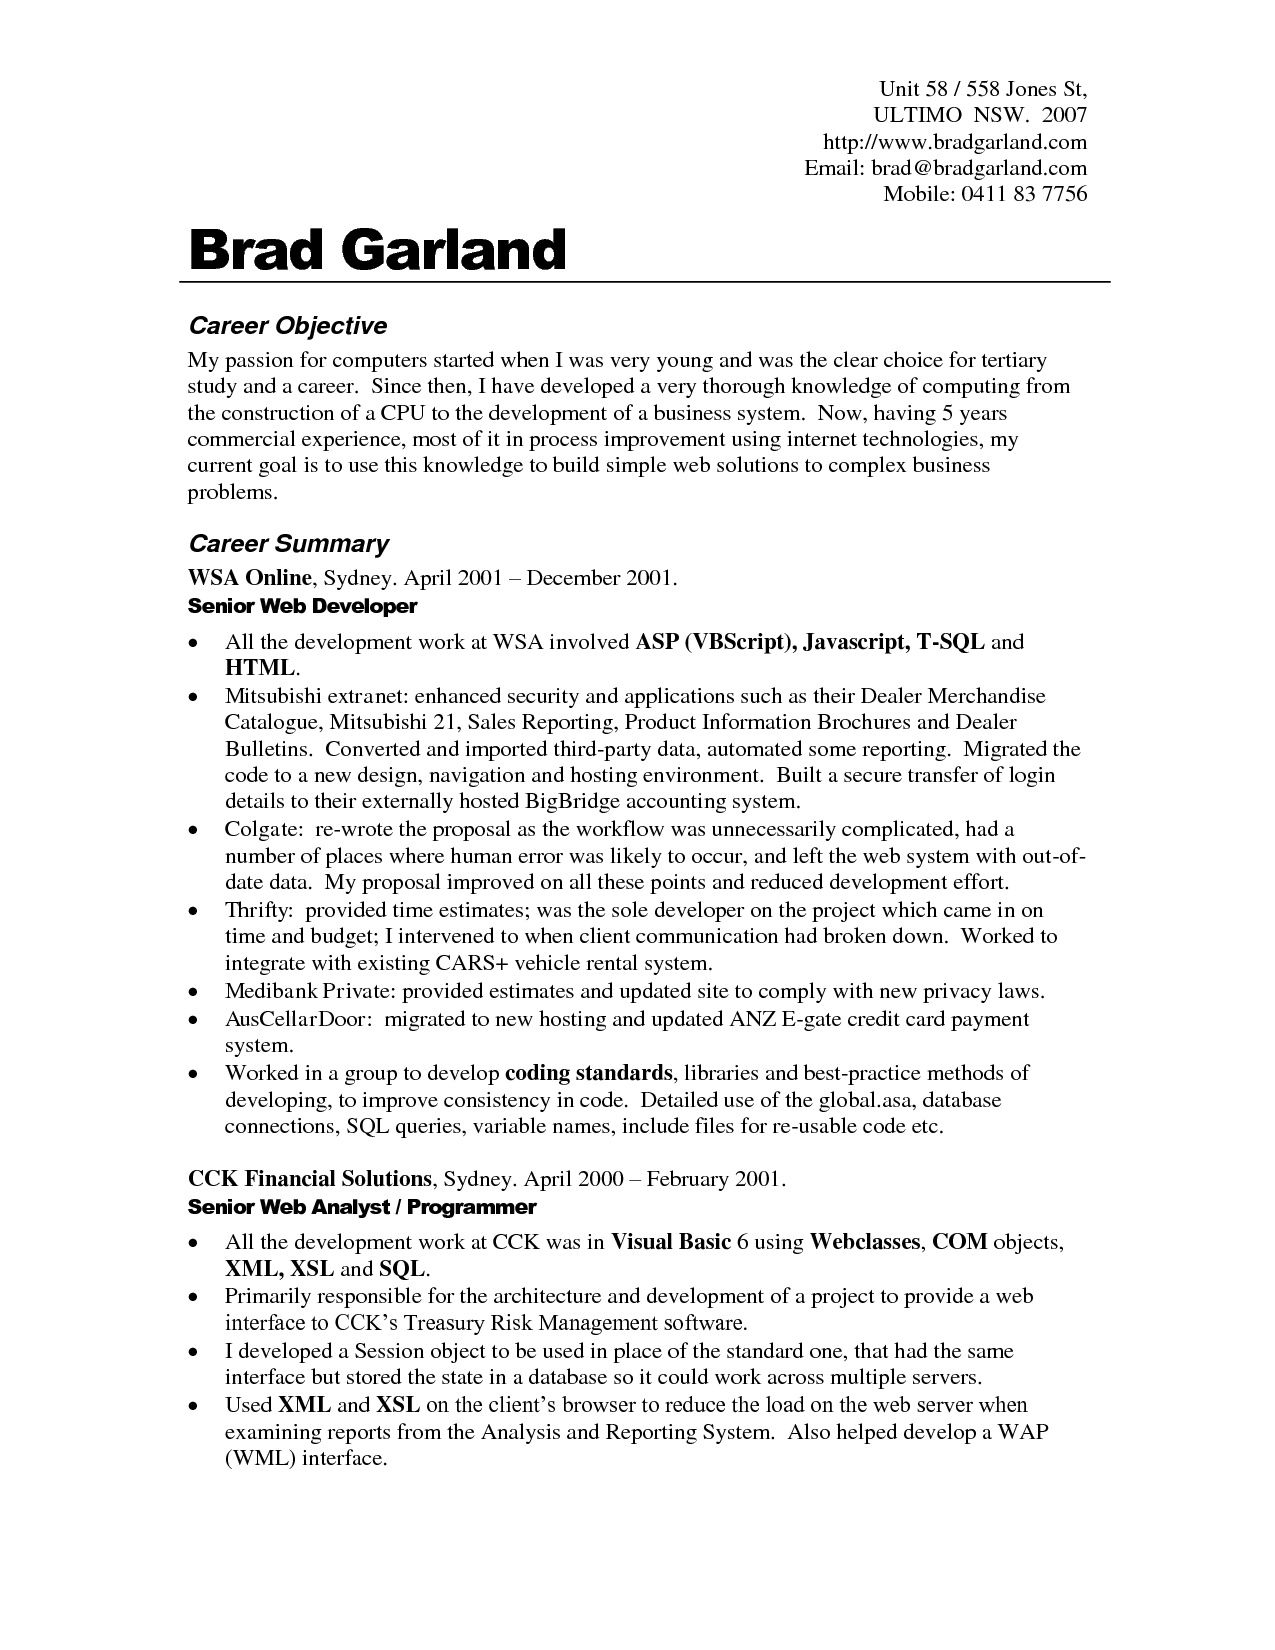 career objective resume examples for example your training goals and objectives rufoot resumes - Professional Objective In Resume